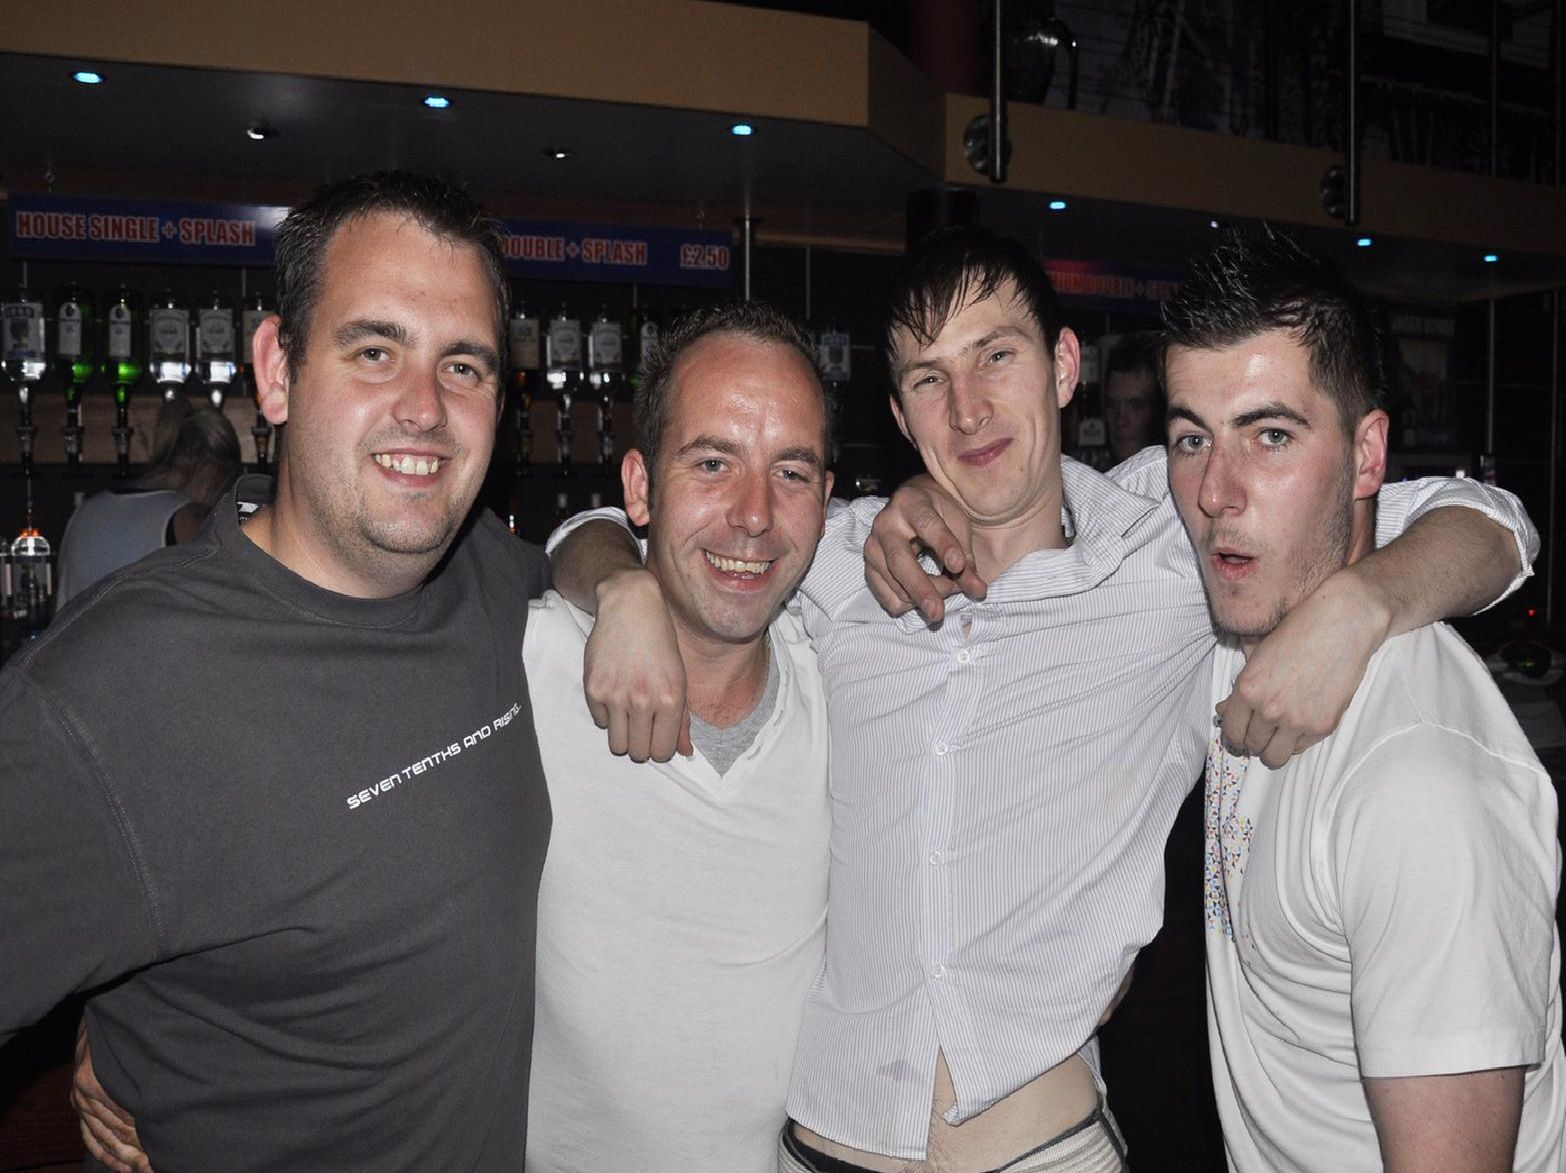 22 photos from nights out in Quids Inn.